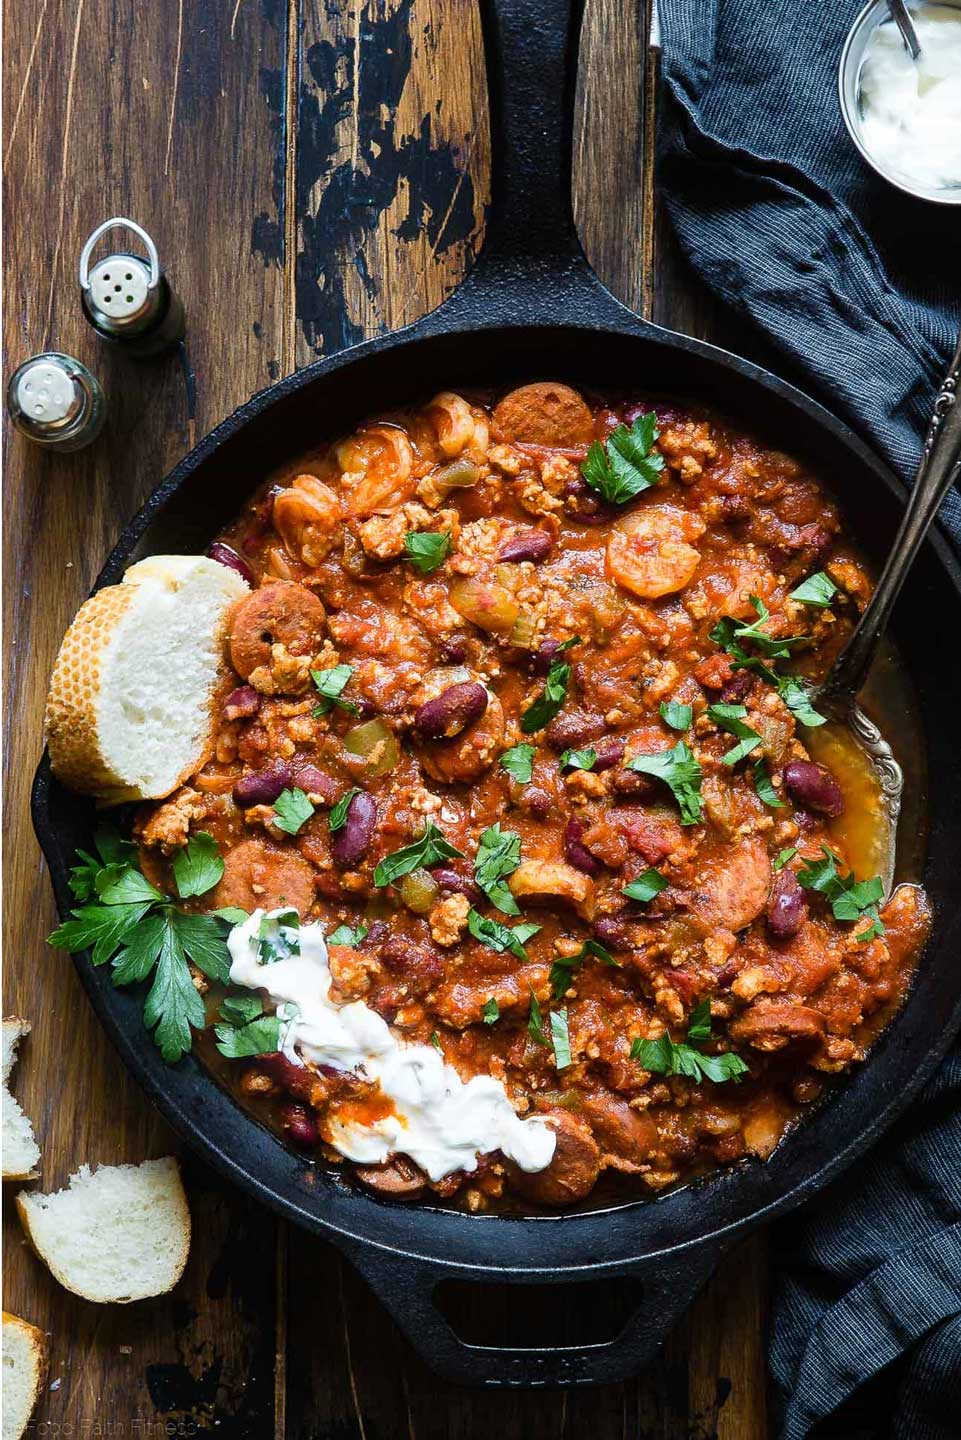 Our list of quick and easy Chili Recipes includes this yummy Cajun Instant Pot Chili from Taylor at Food Faith Fitness